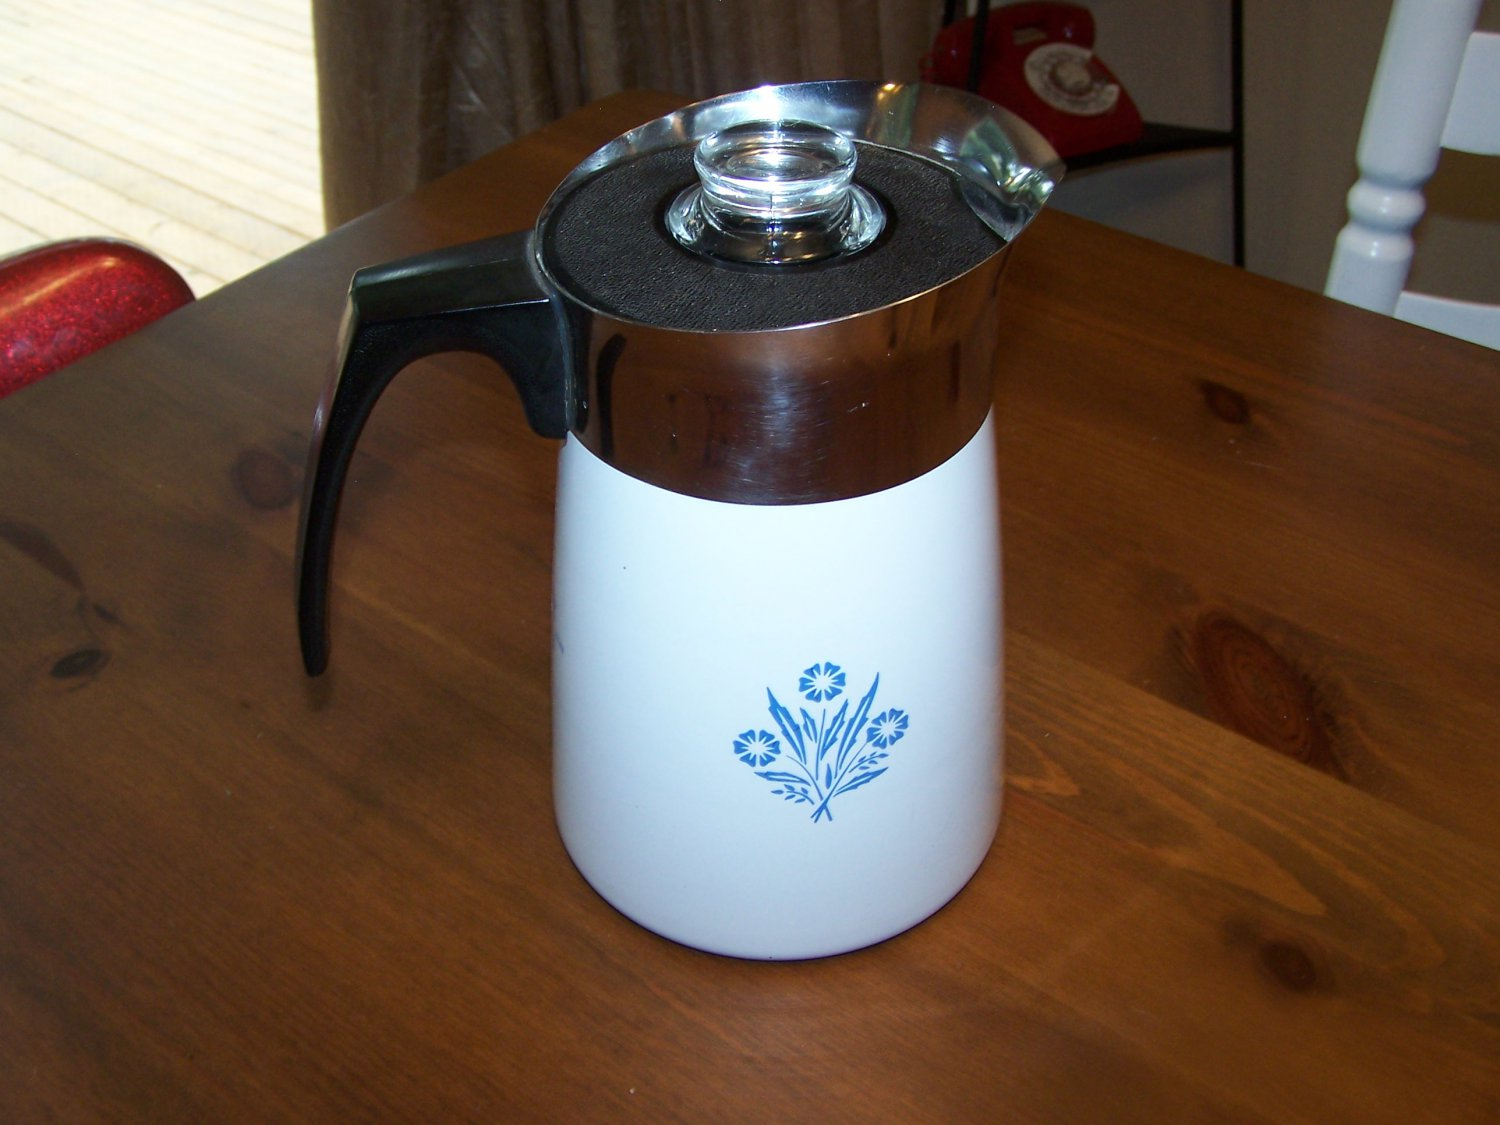 Corning Ware 6 Cup Cornflower Blue Percolator, Stovetop Coffee Pot Corningware